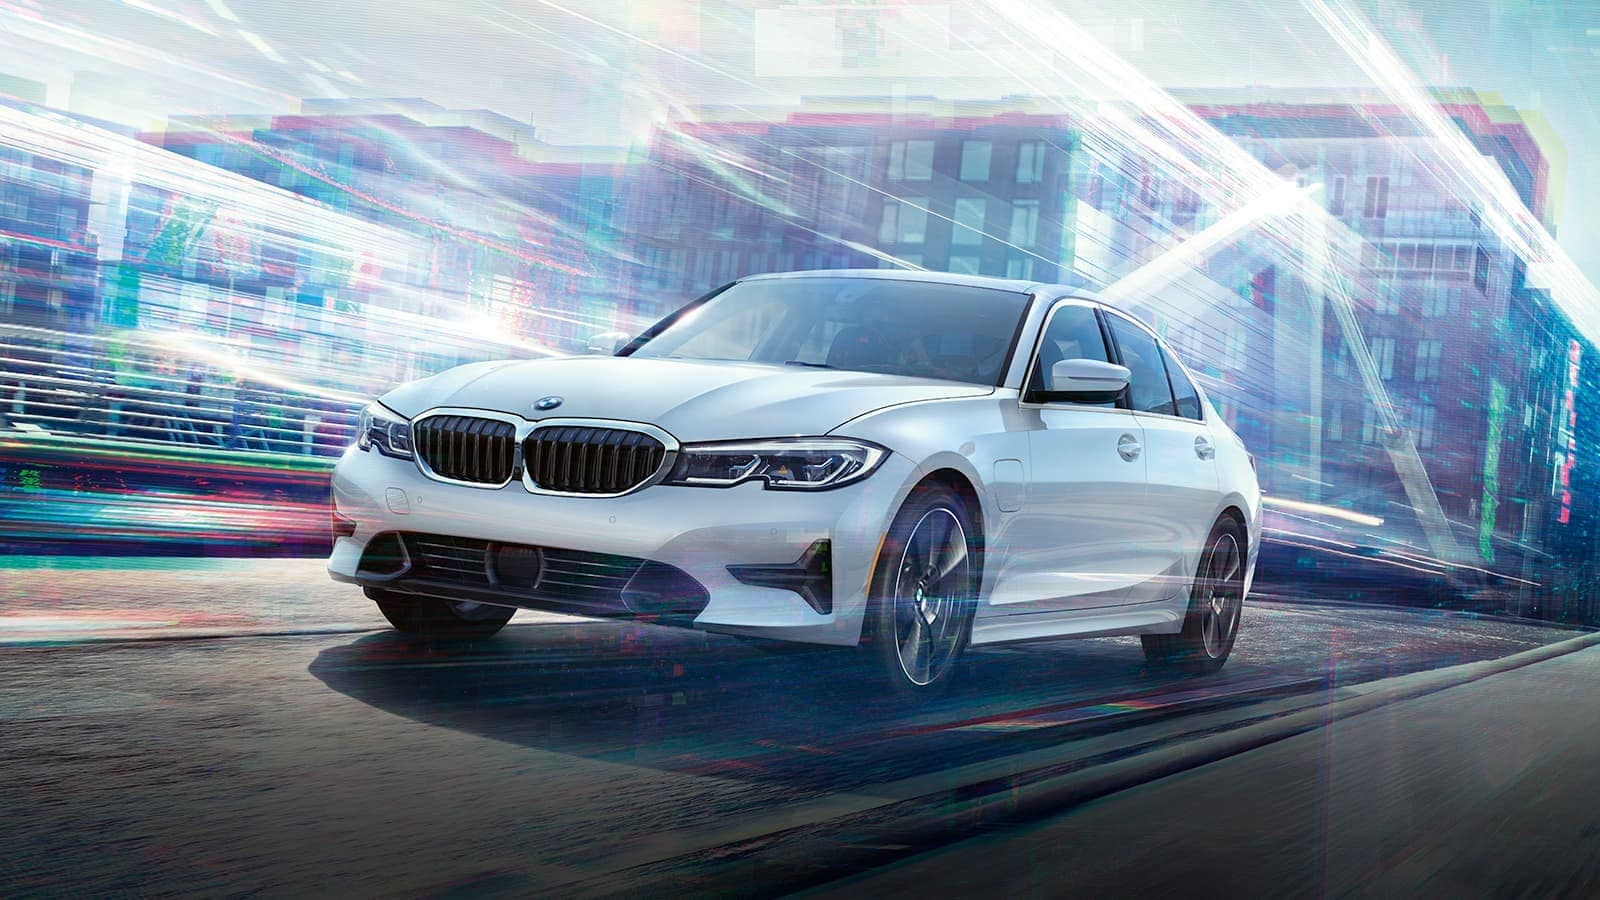 white 3Series drives past polychromatic city buildings